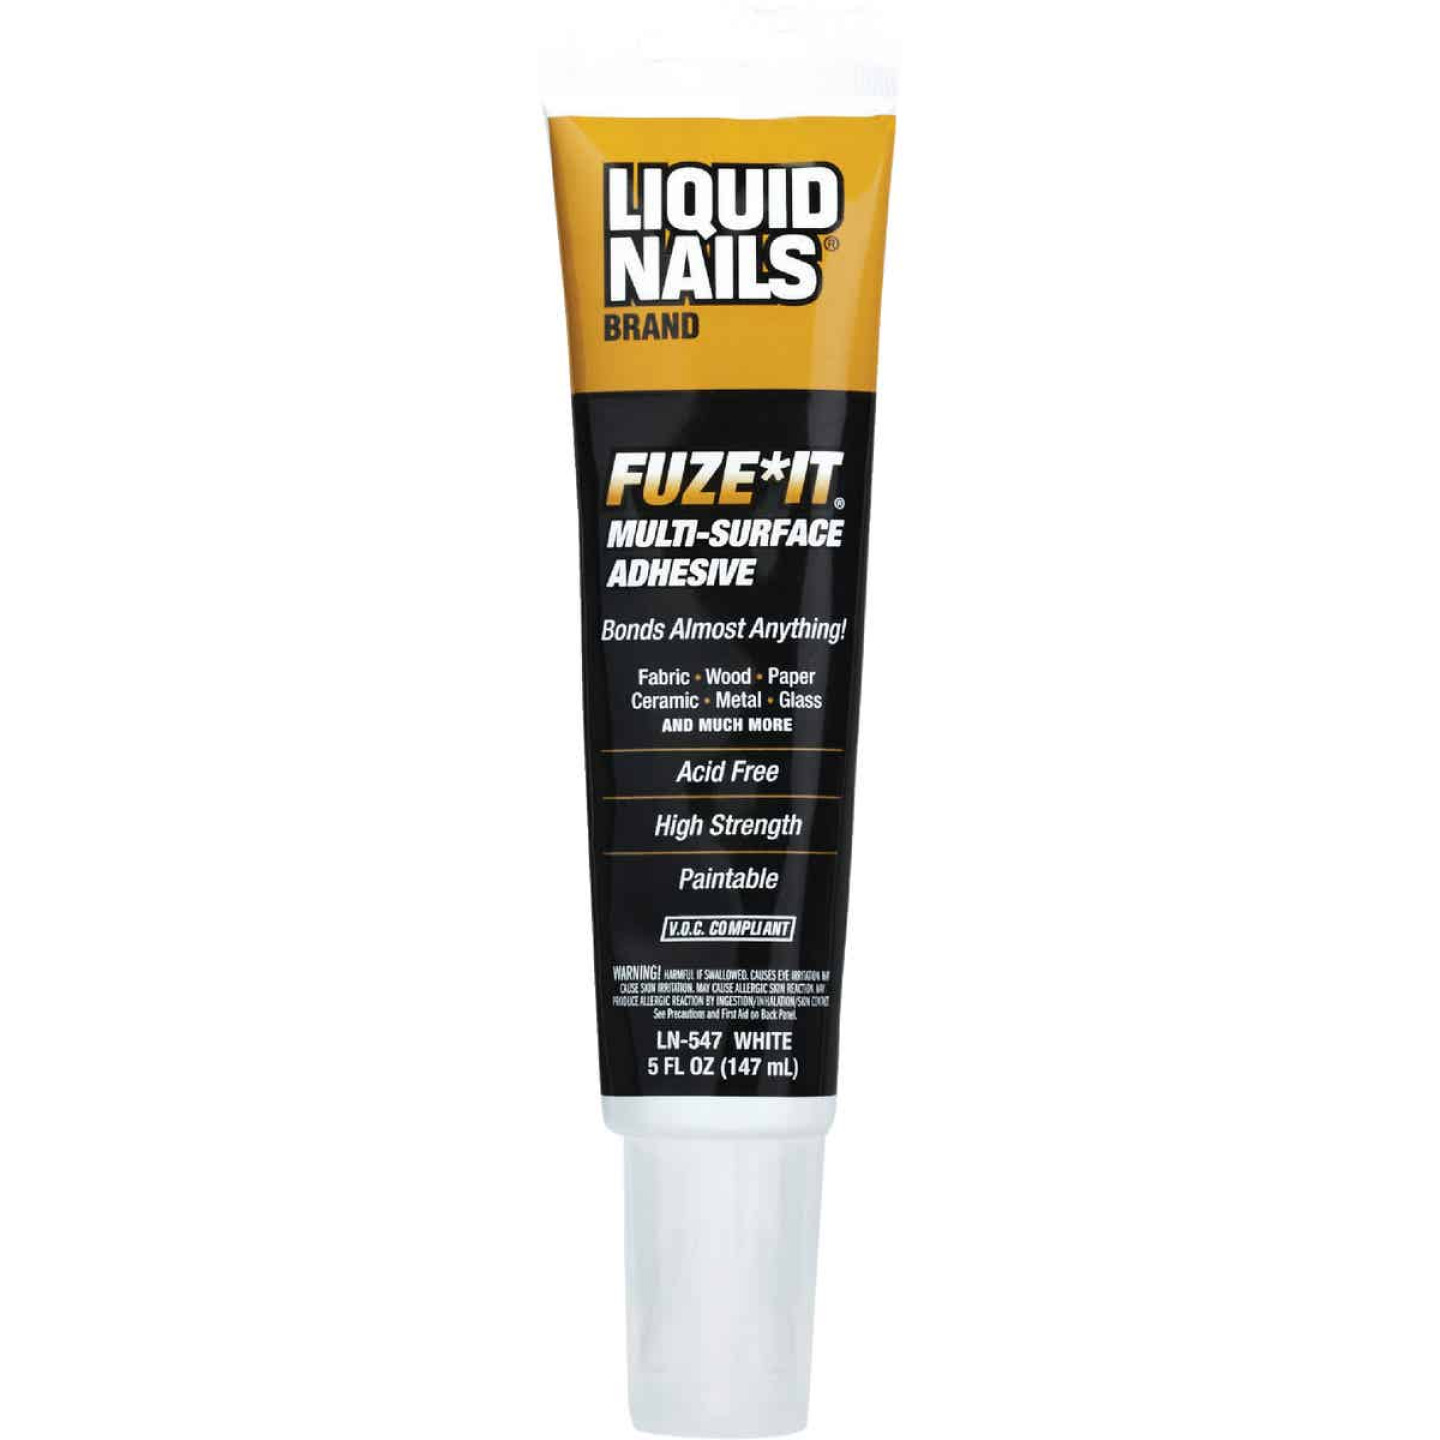 Liquid Nails Fuze-It 5 Oz. All Surface Construction Adhesive Image 1